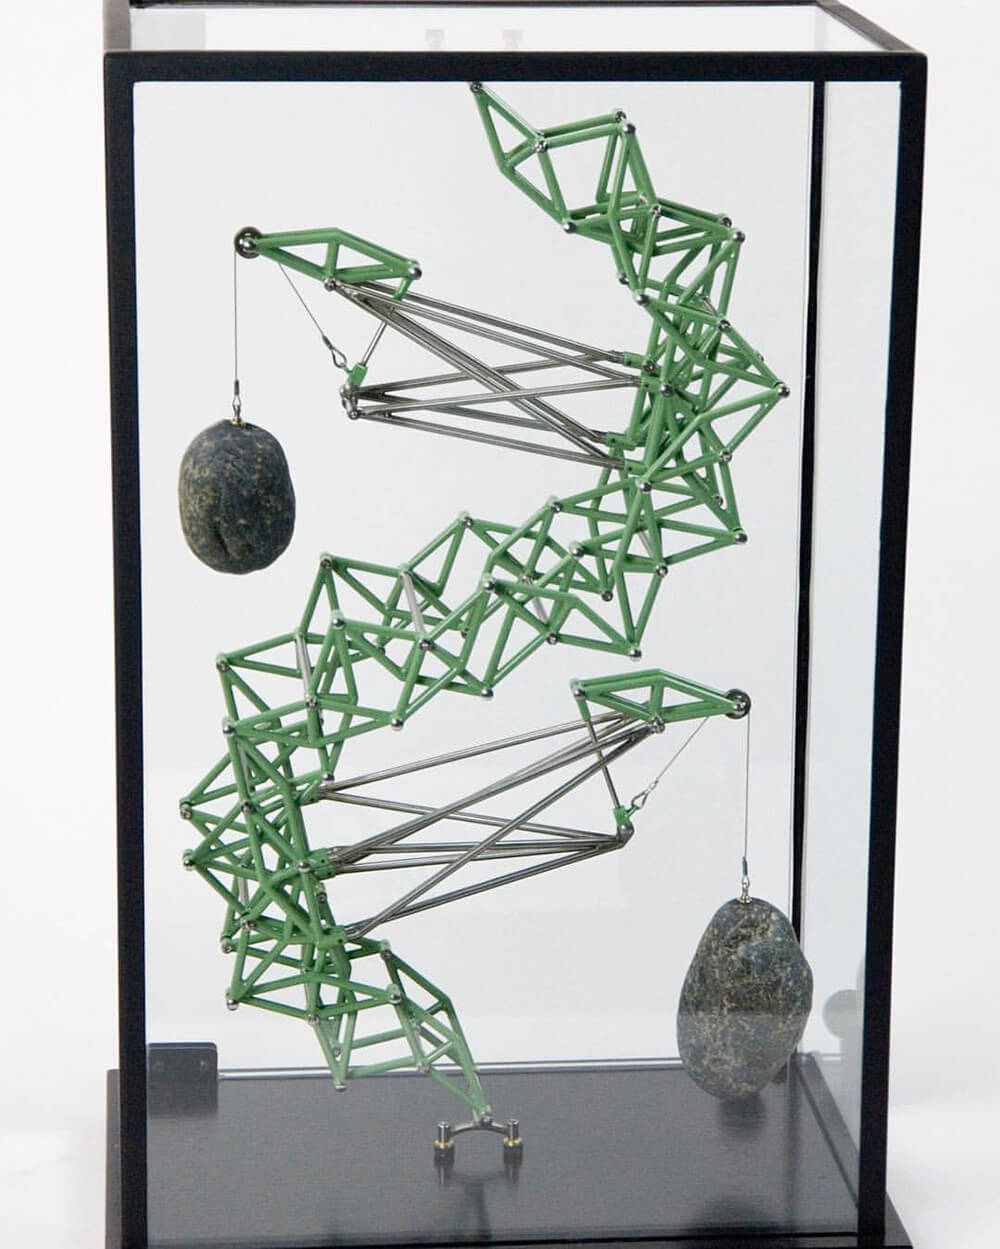 rock sculptures dan grayber fy 3 - Artist Suspended Mechanical Sculptures by with Their Own Weight